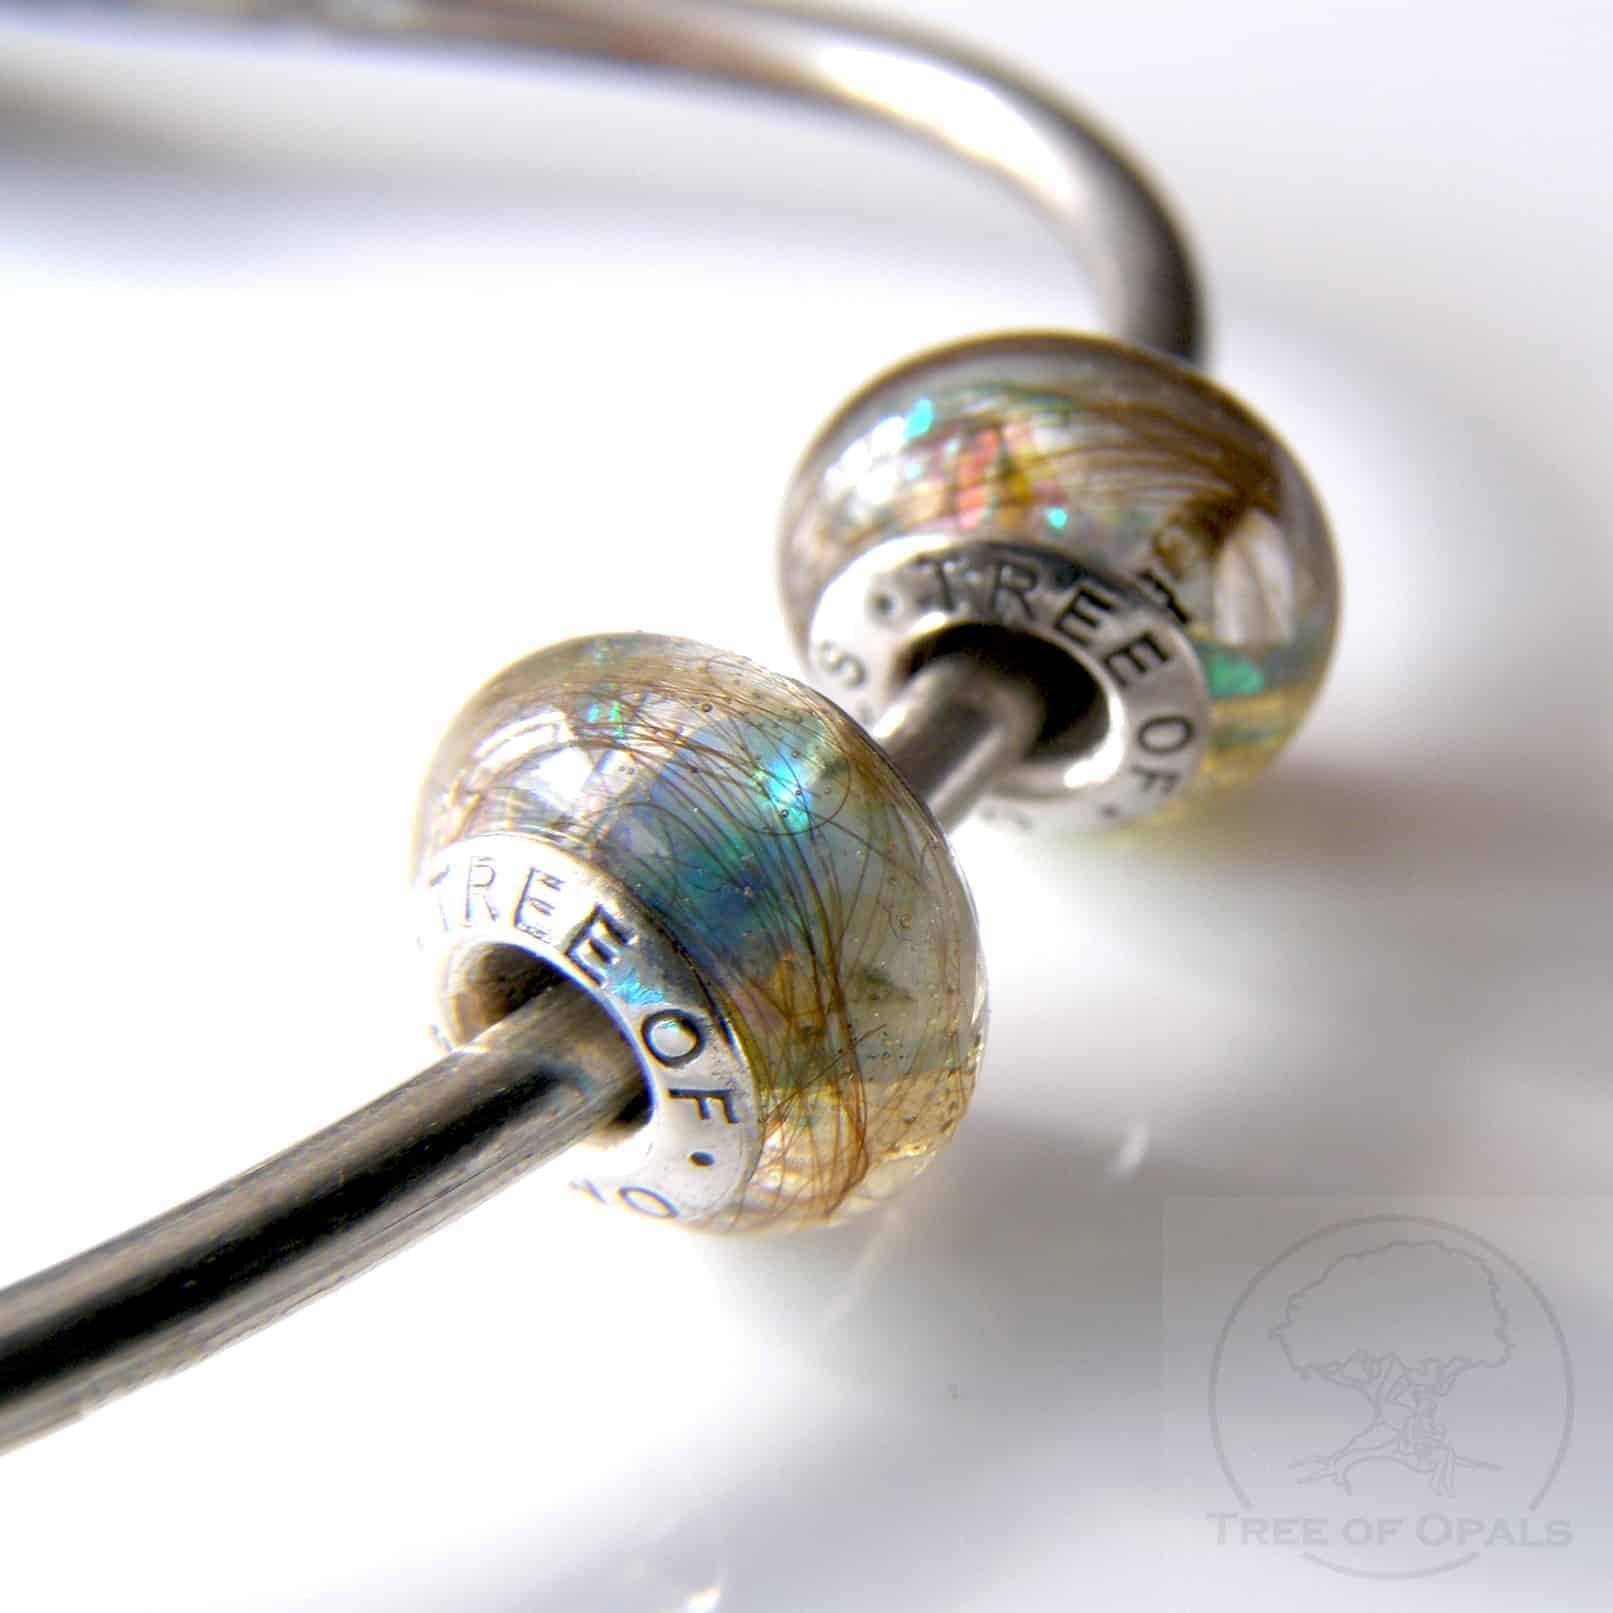 lock of hair charm duo for Pandora bracelets with genuine opal flakes, sapphire and emerald Precious Sparkles